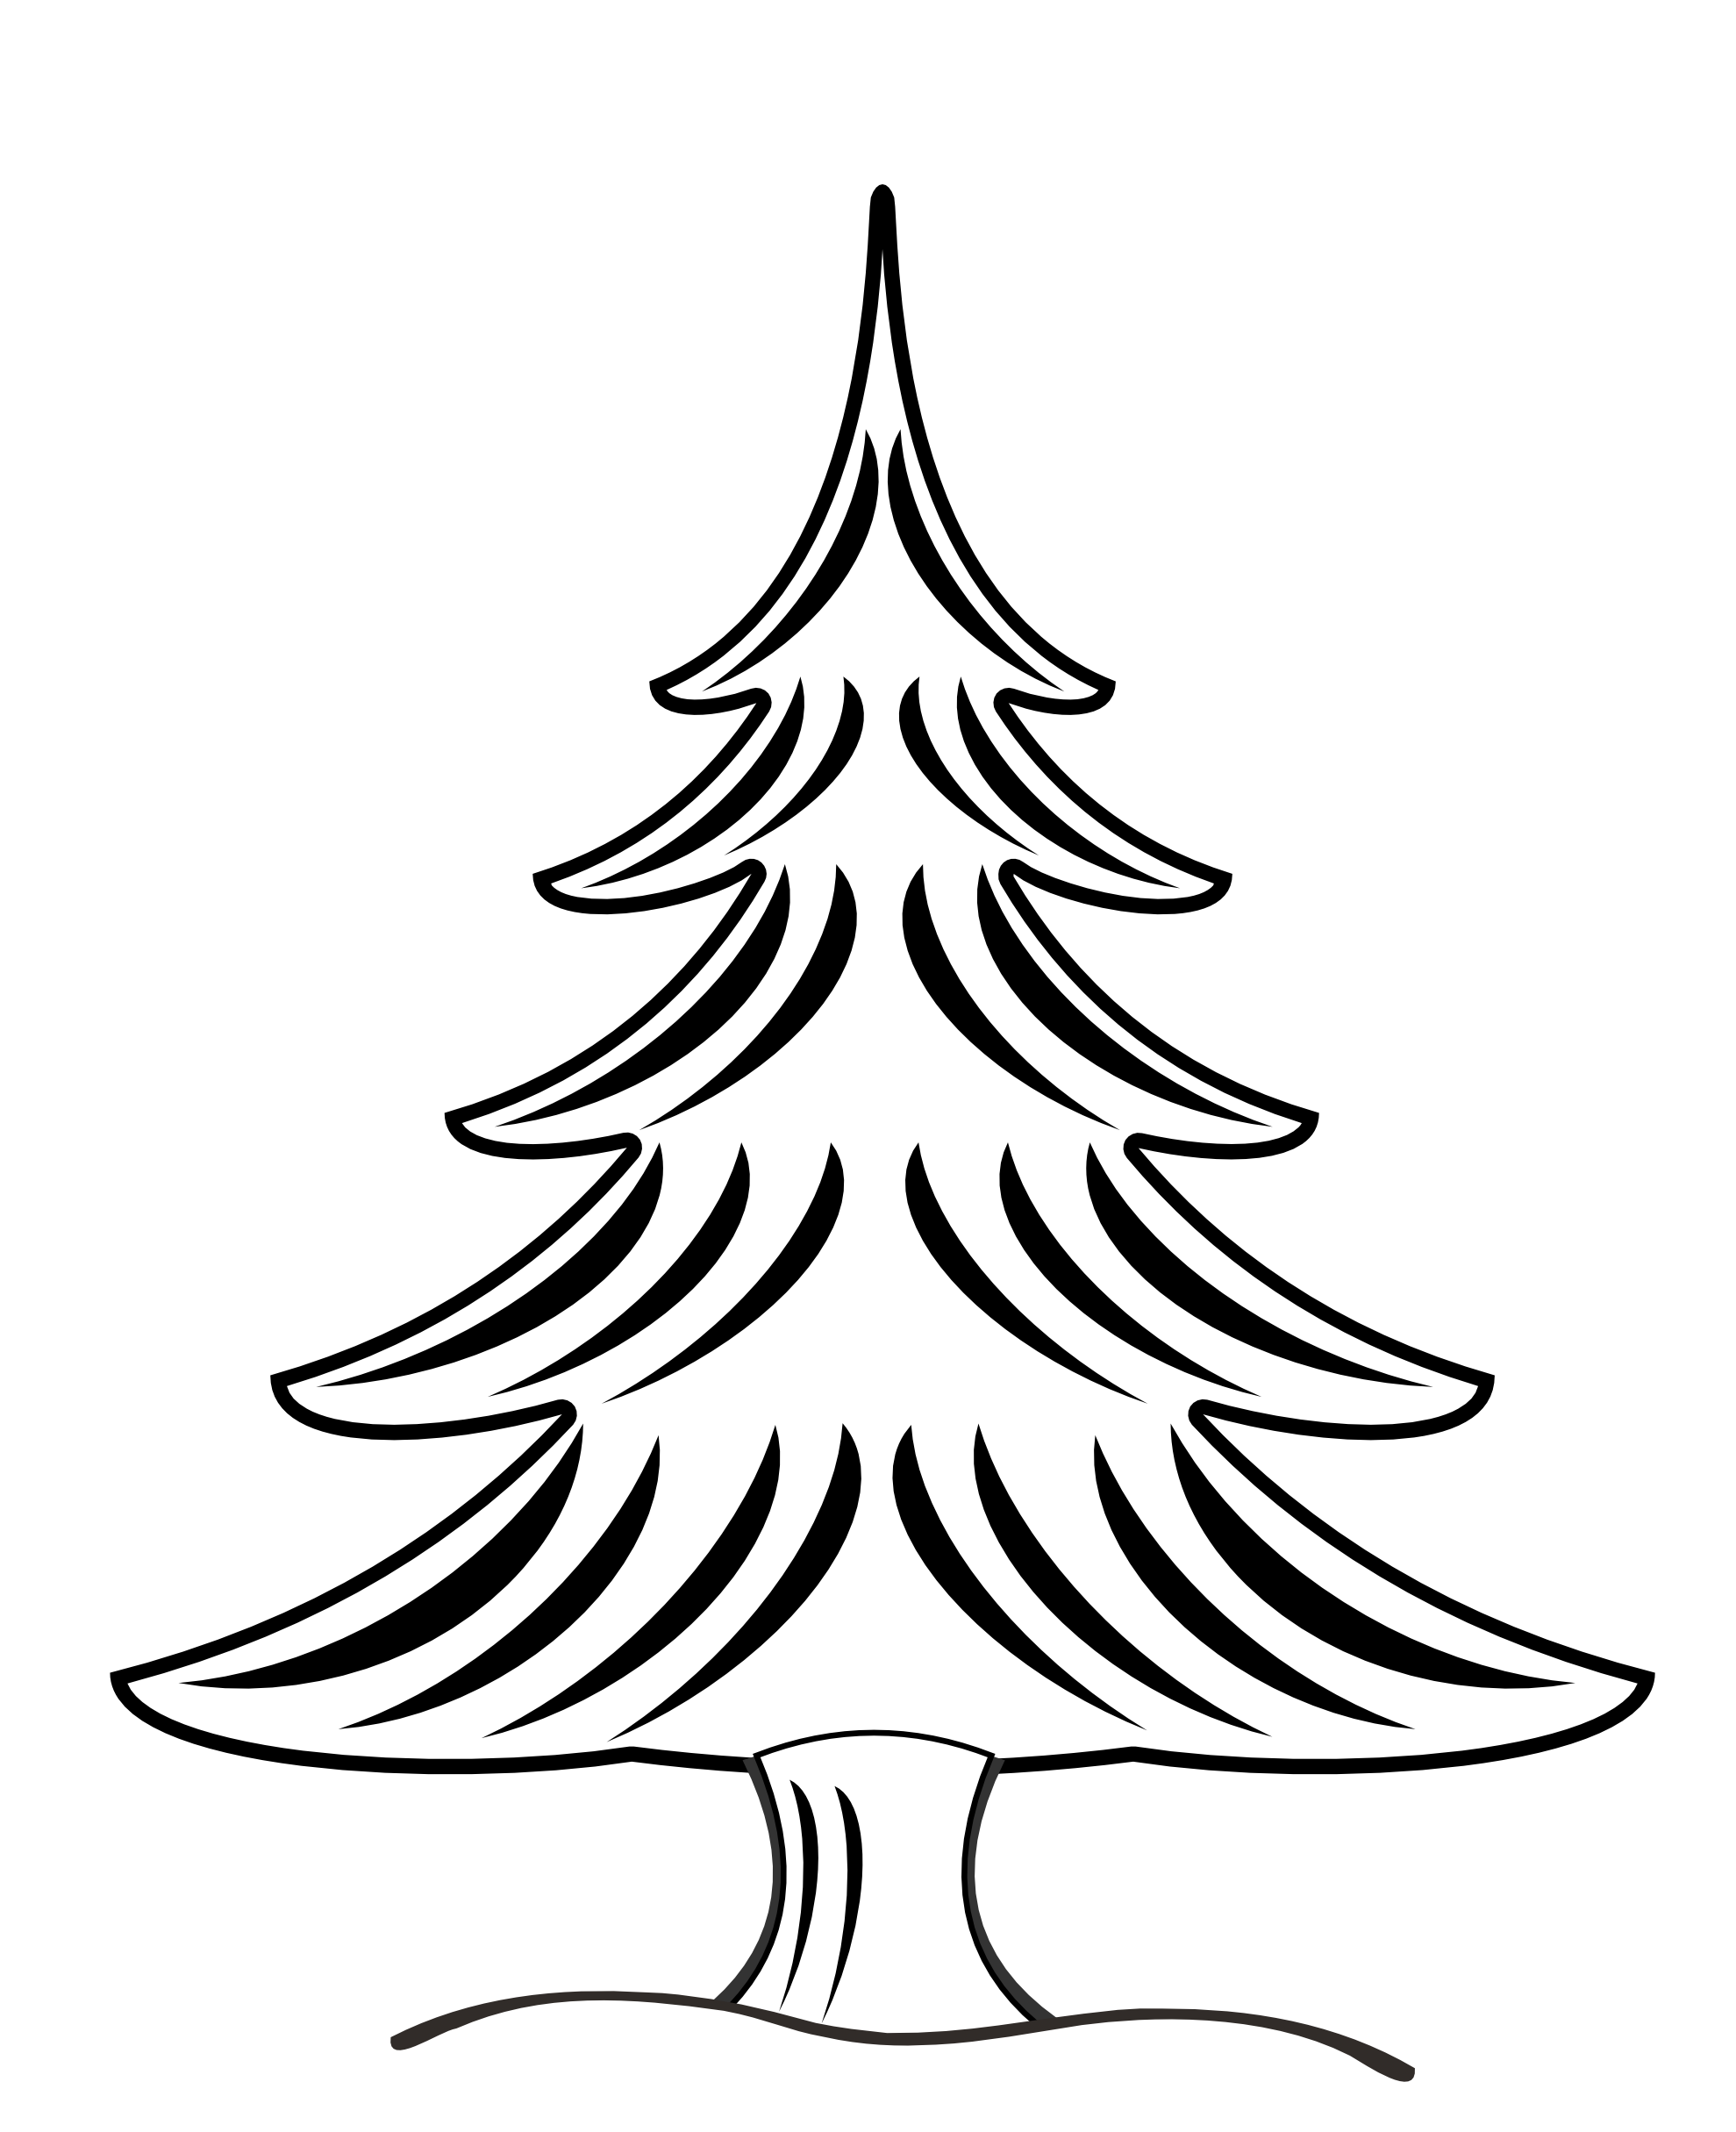 Clipart Christmas Tree.Best Christmas Tree Clipart Black And White 14638